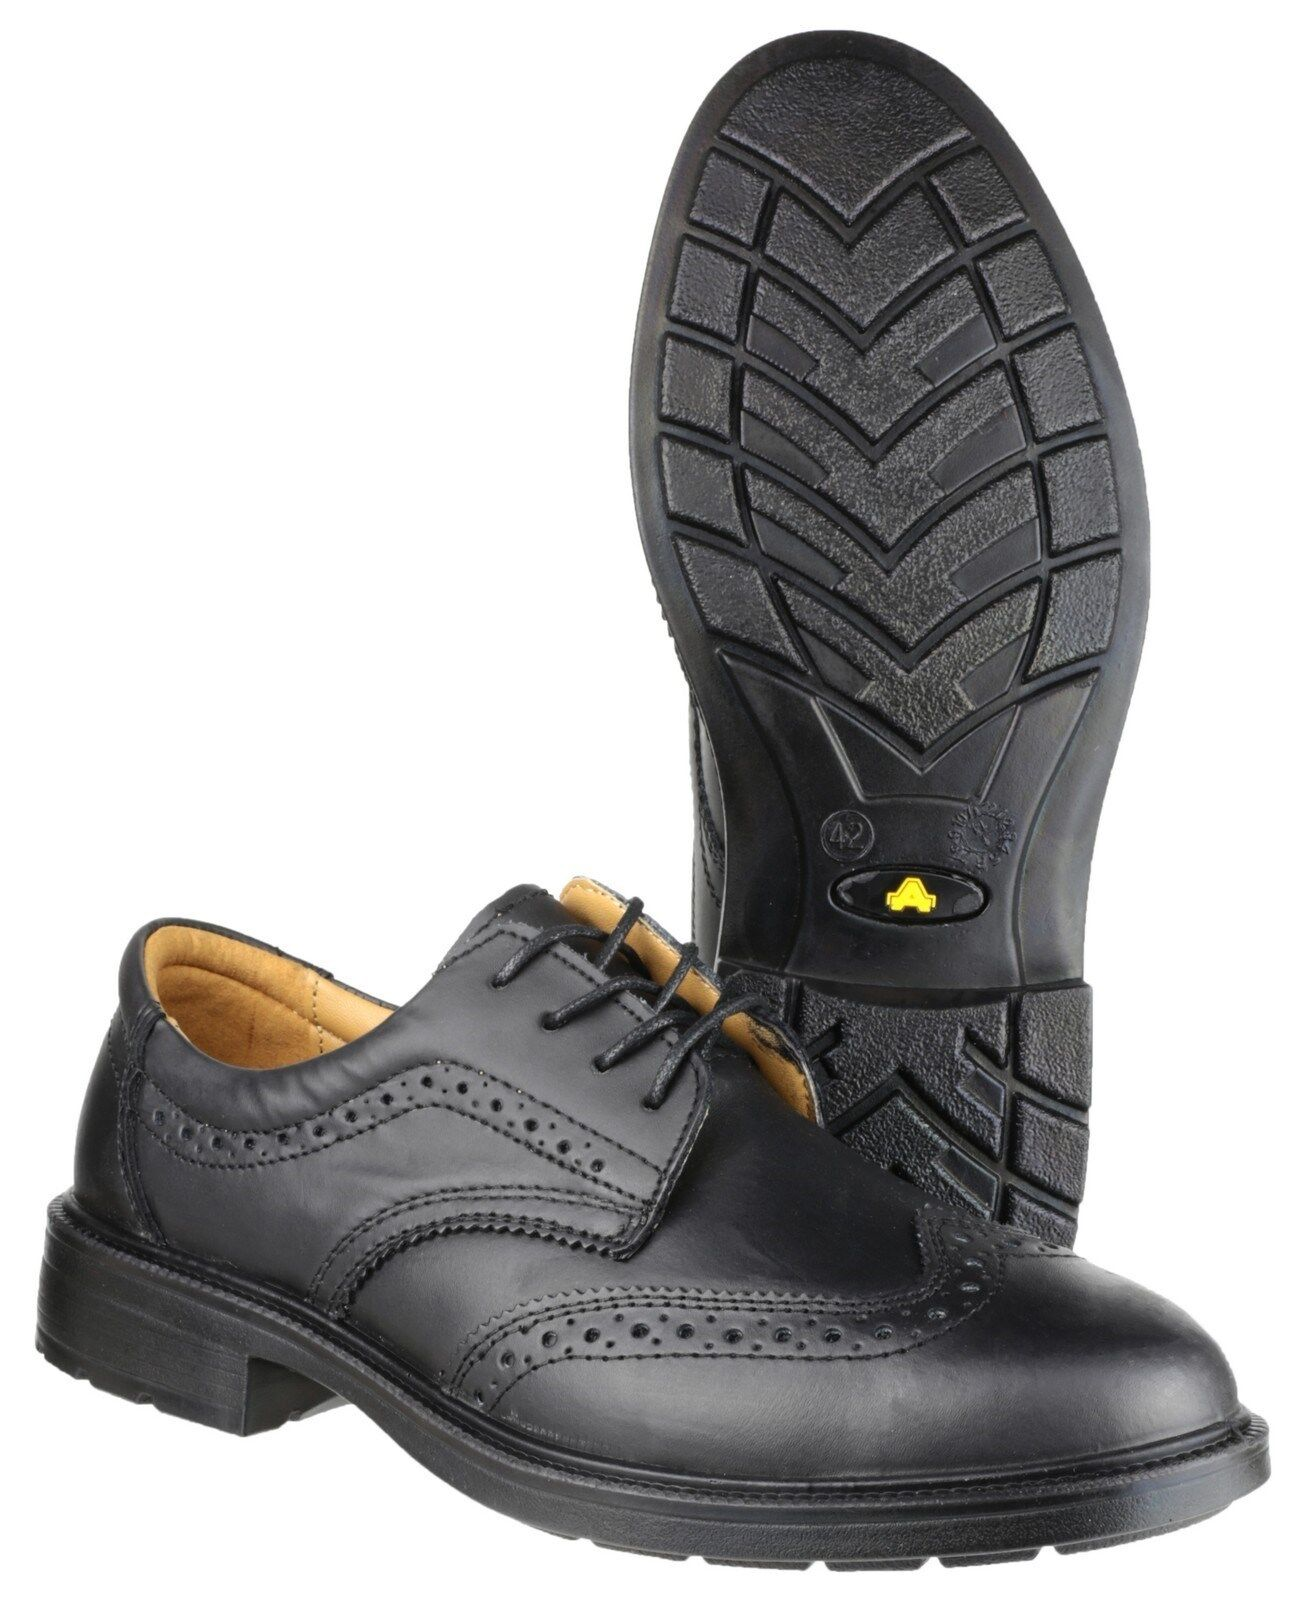 Amblers FS44 Safety shoes Smart Steel Toe Cap Industrial Mens Work Brogues